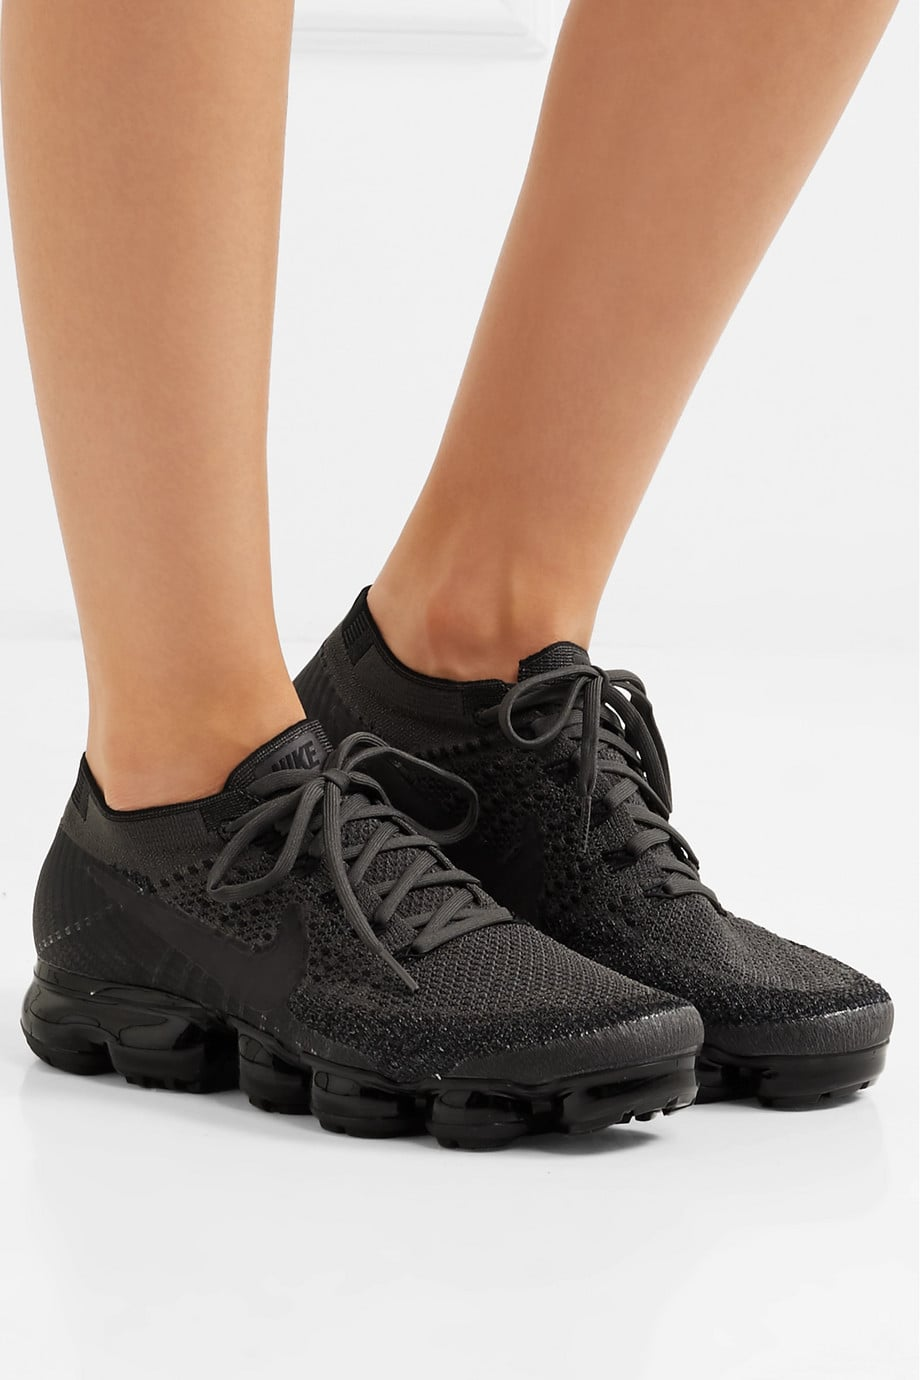 Nike Air Vapormax Flyknit Sneakers | If